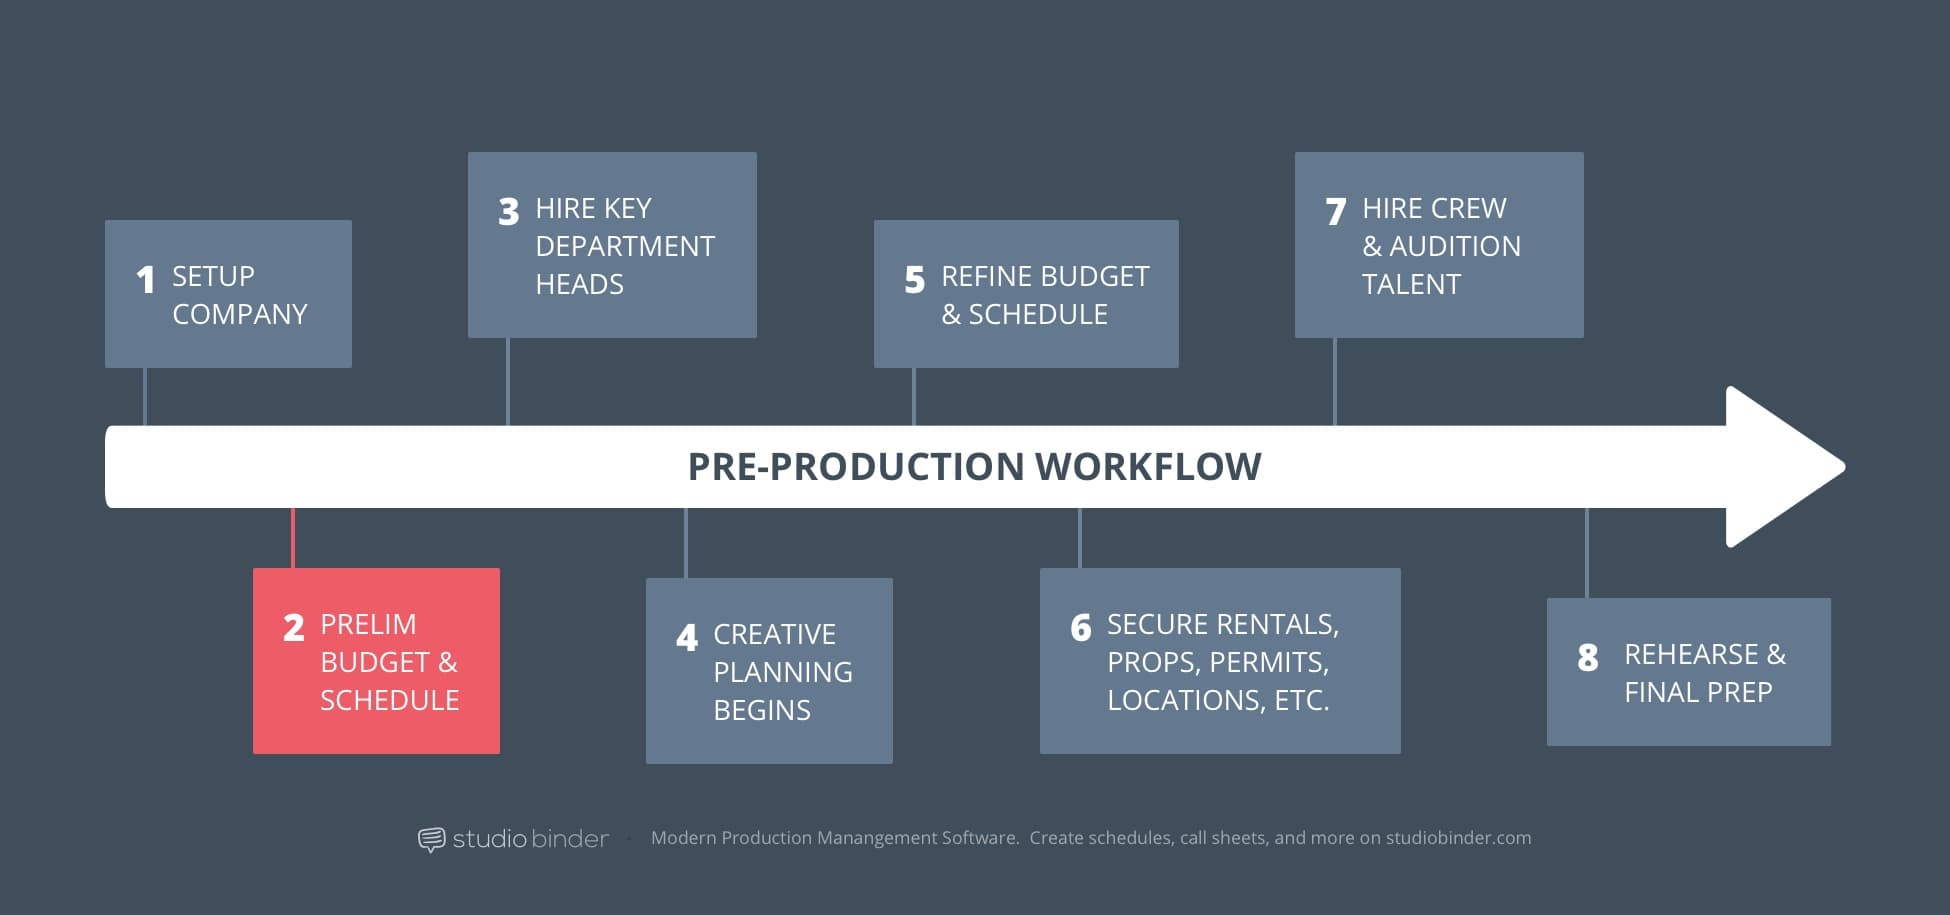 How To Produce A Movie: The Pre-Production Process Explained